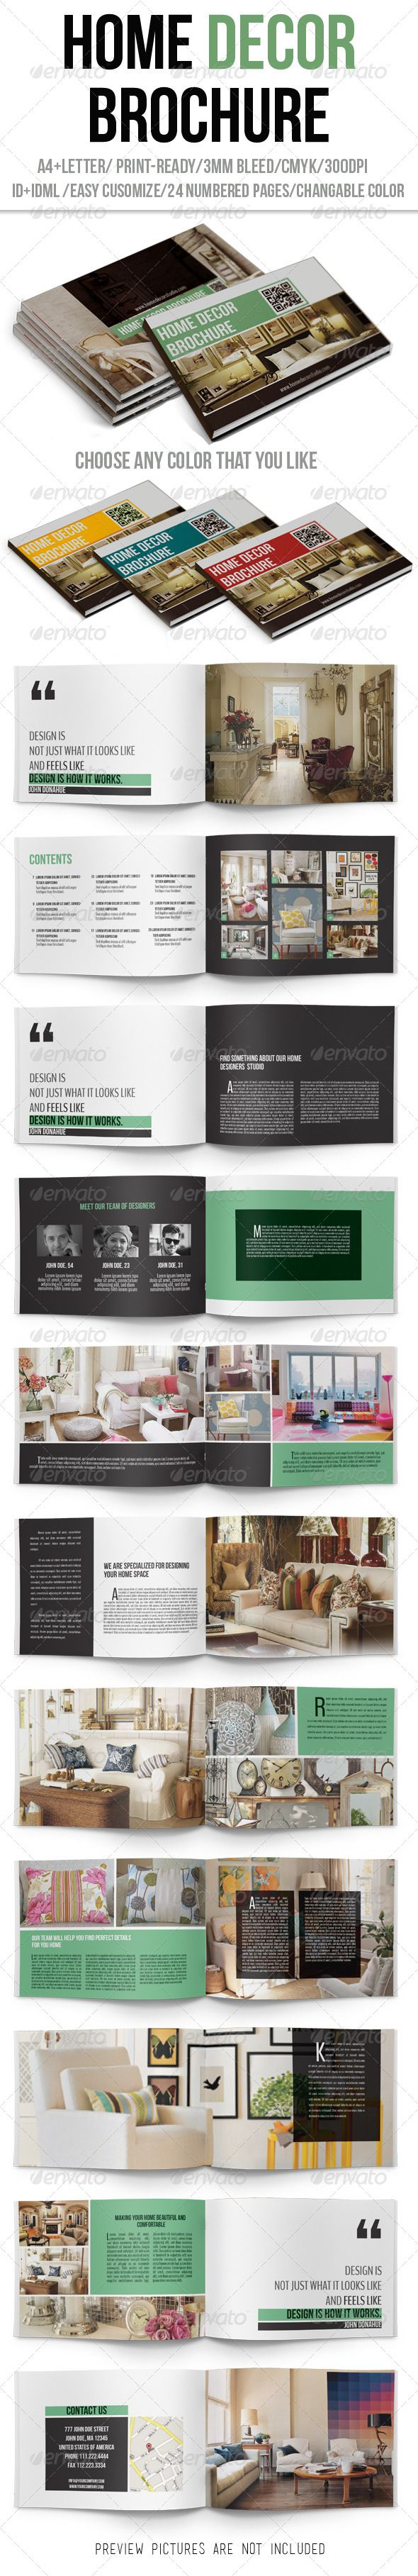 Home Decor Brochure Catalogs Brochures Brochure Design Graphic